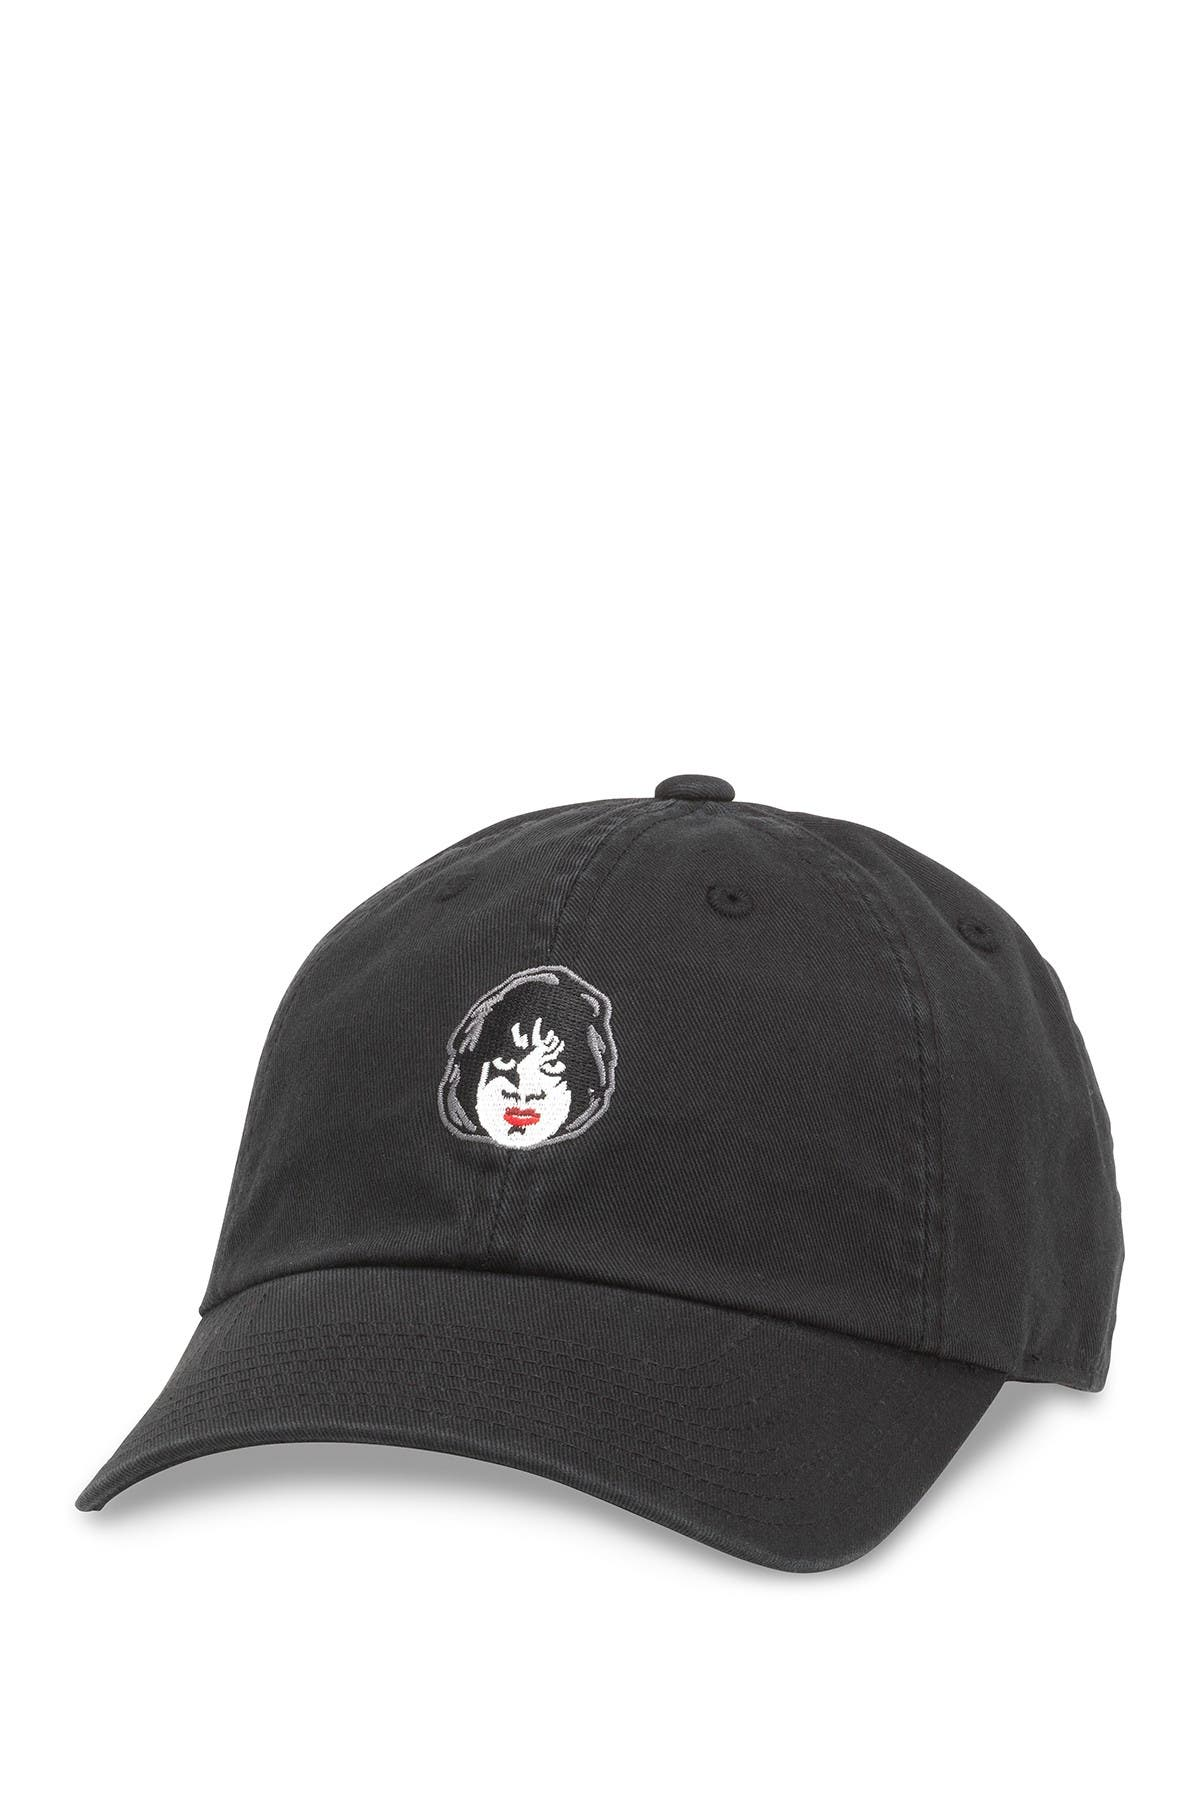 Image of American Needle Kiss The Starchild Paul Stanley Micro Embroidered Baseball Cap